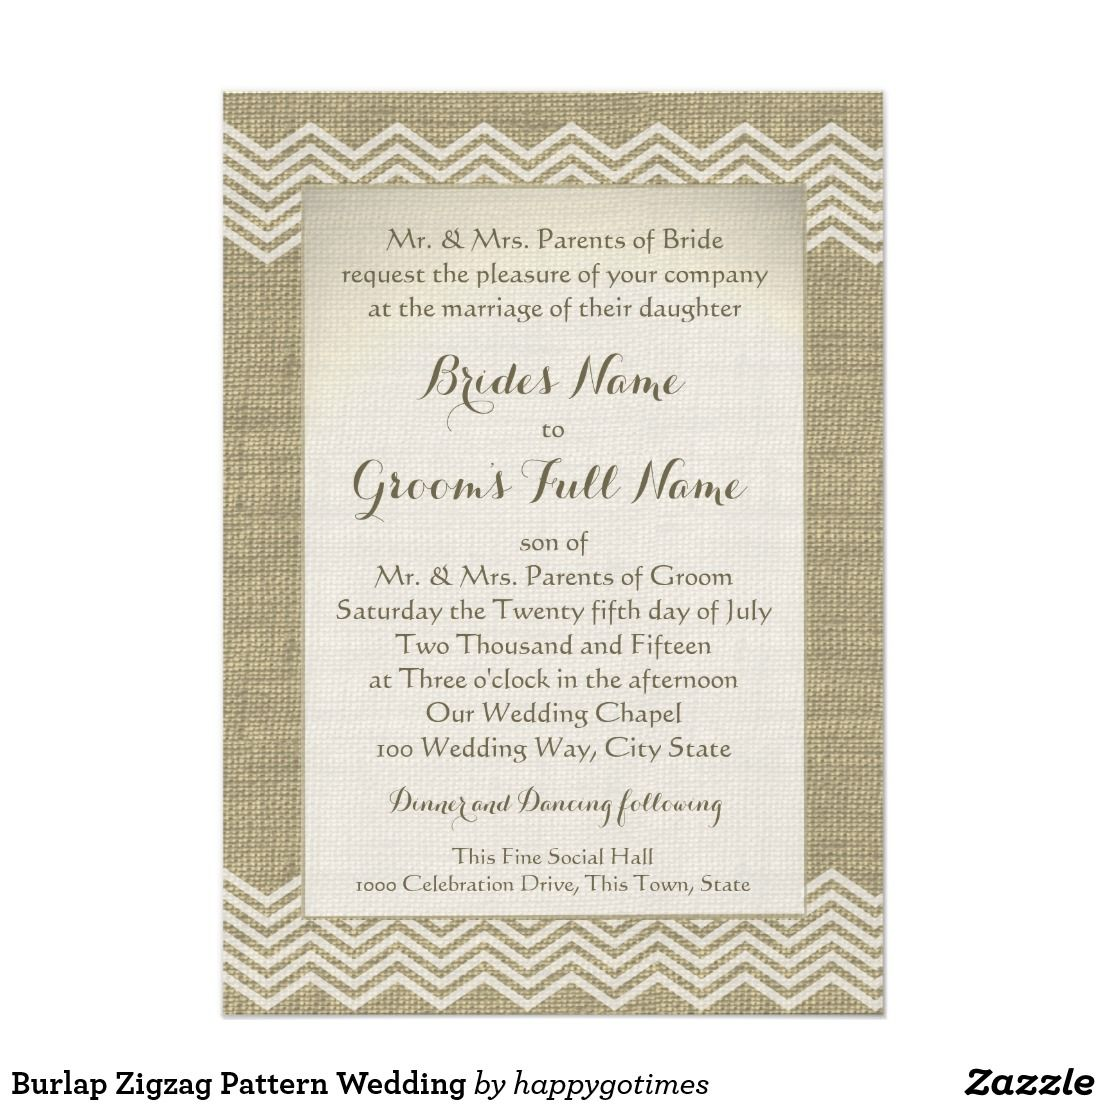 Burlap Zigzag Pattern Wedding Card The printed look of burlap with a ...